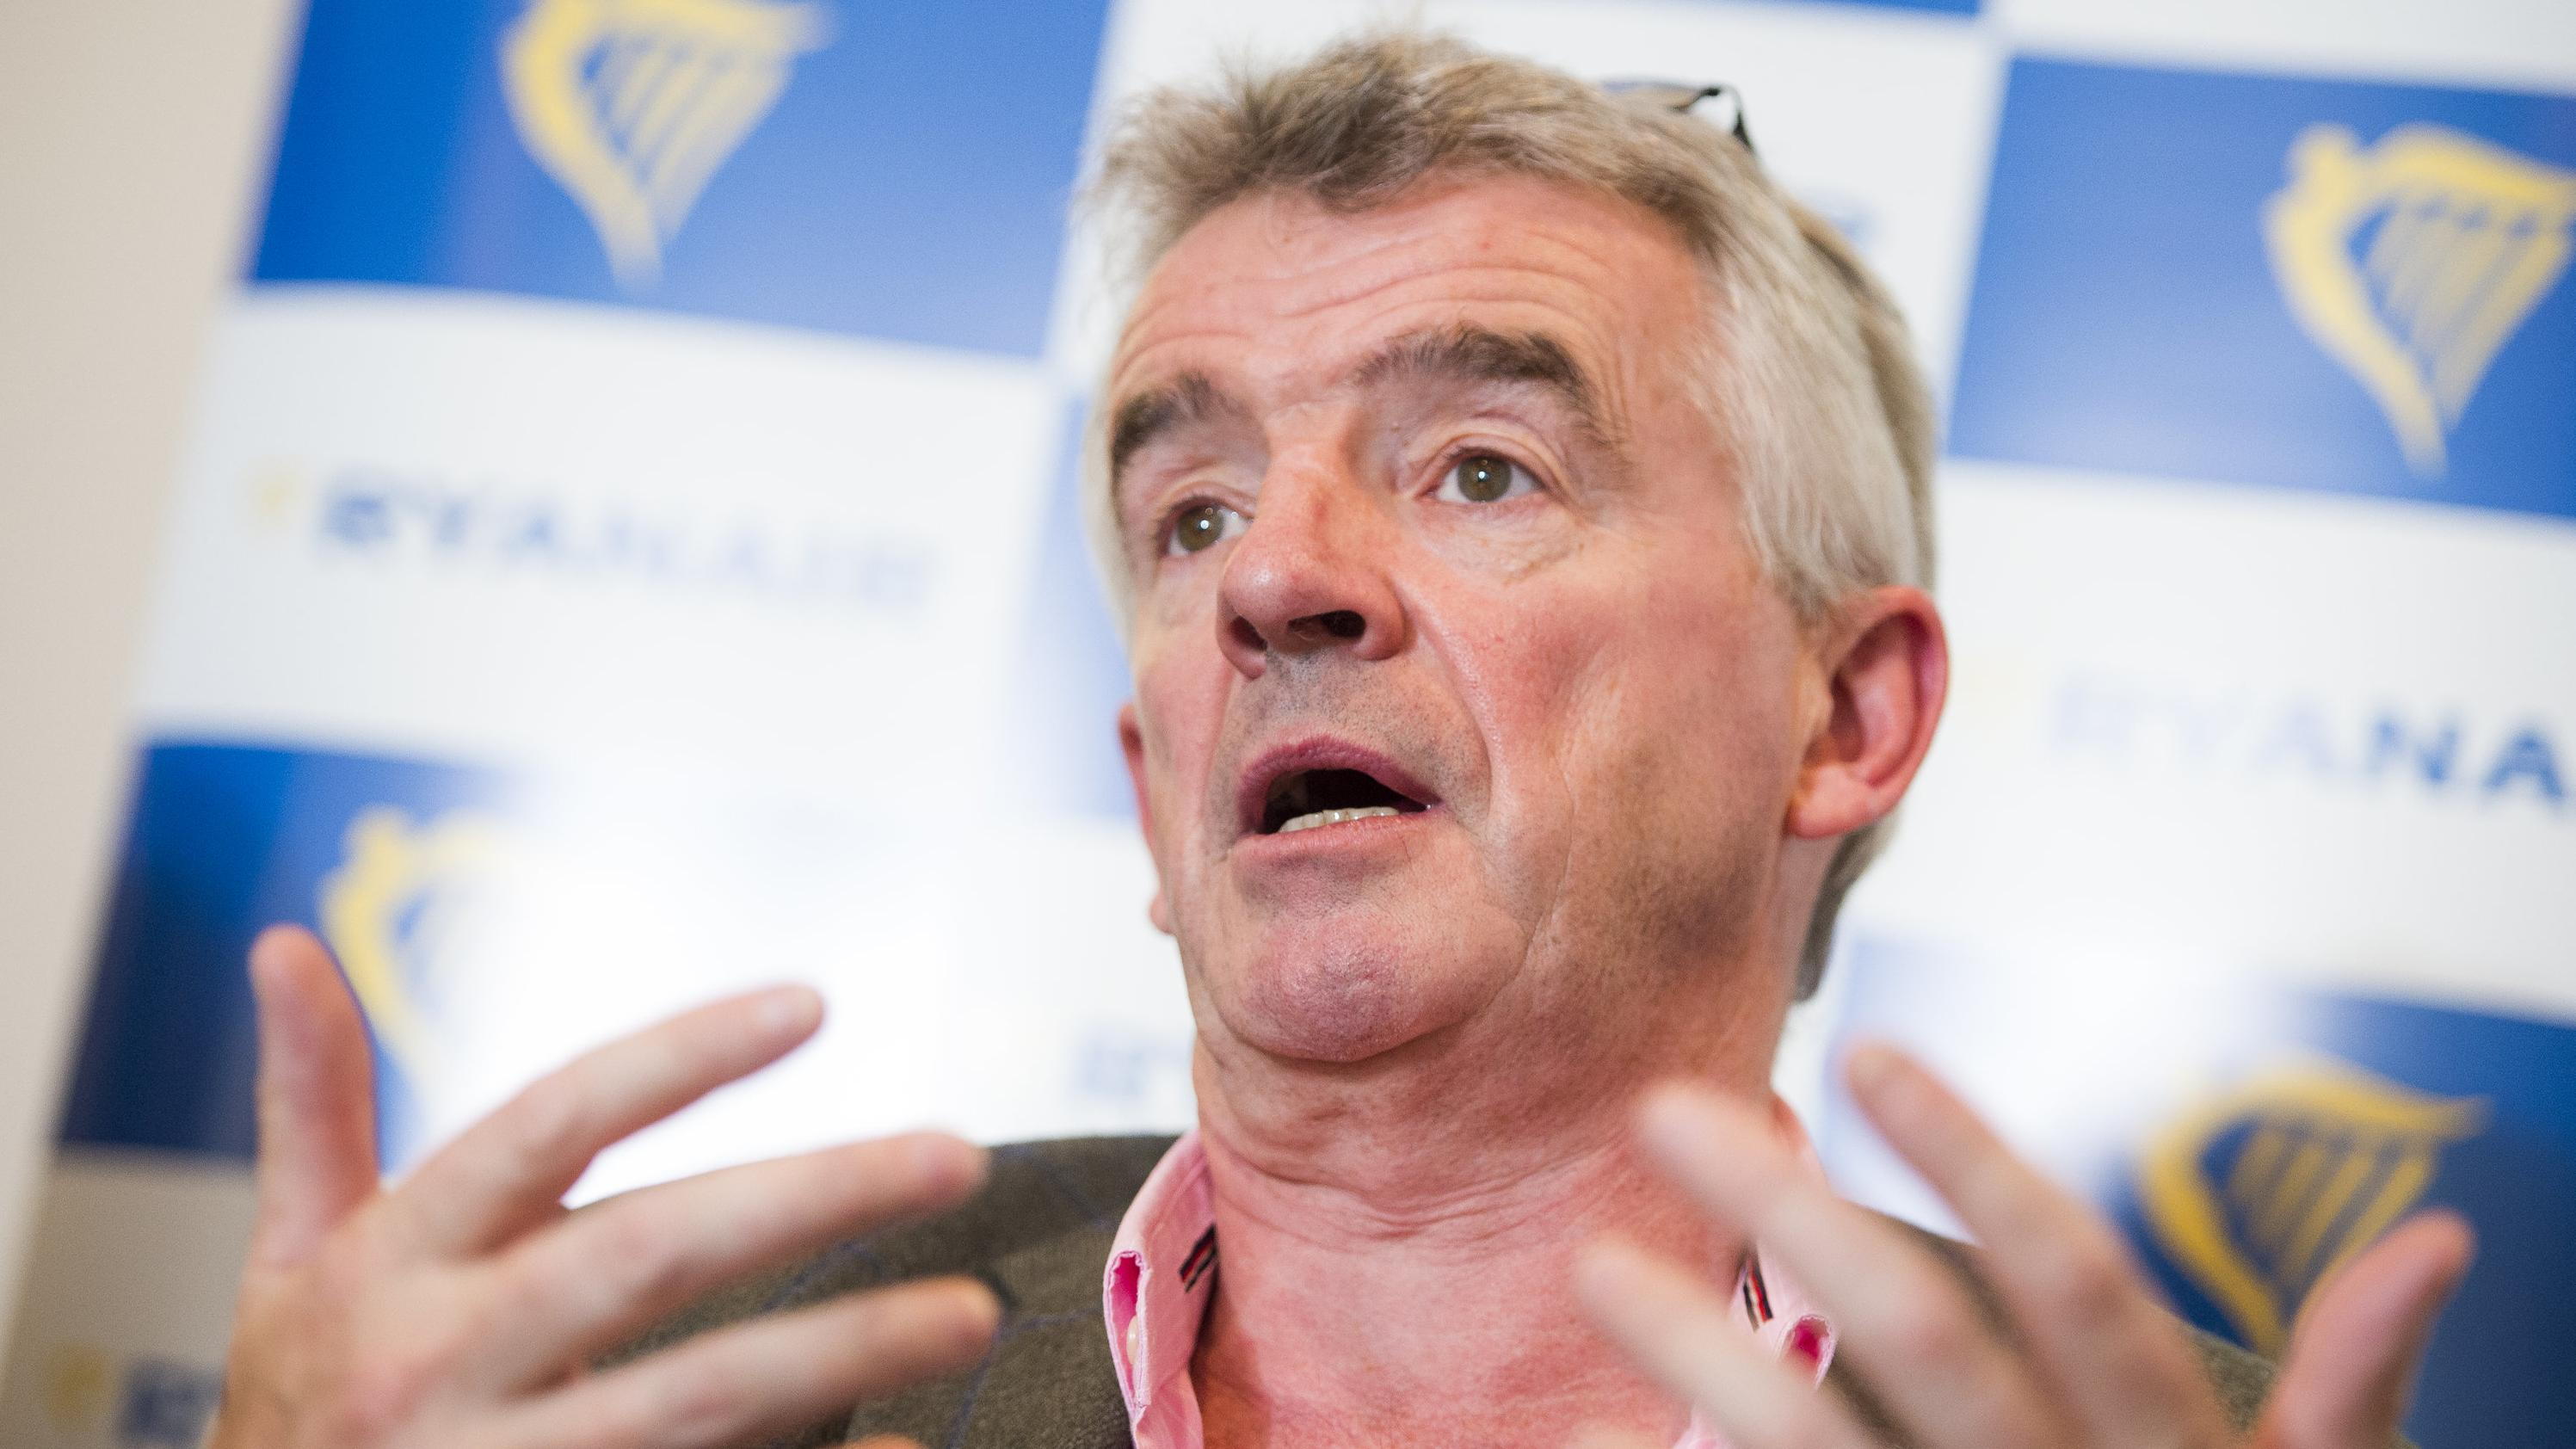 Michael O'Leary, CEO von Ryanair